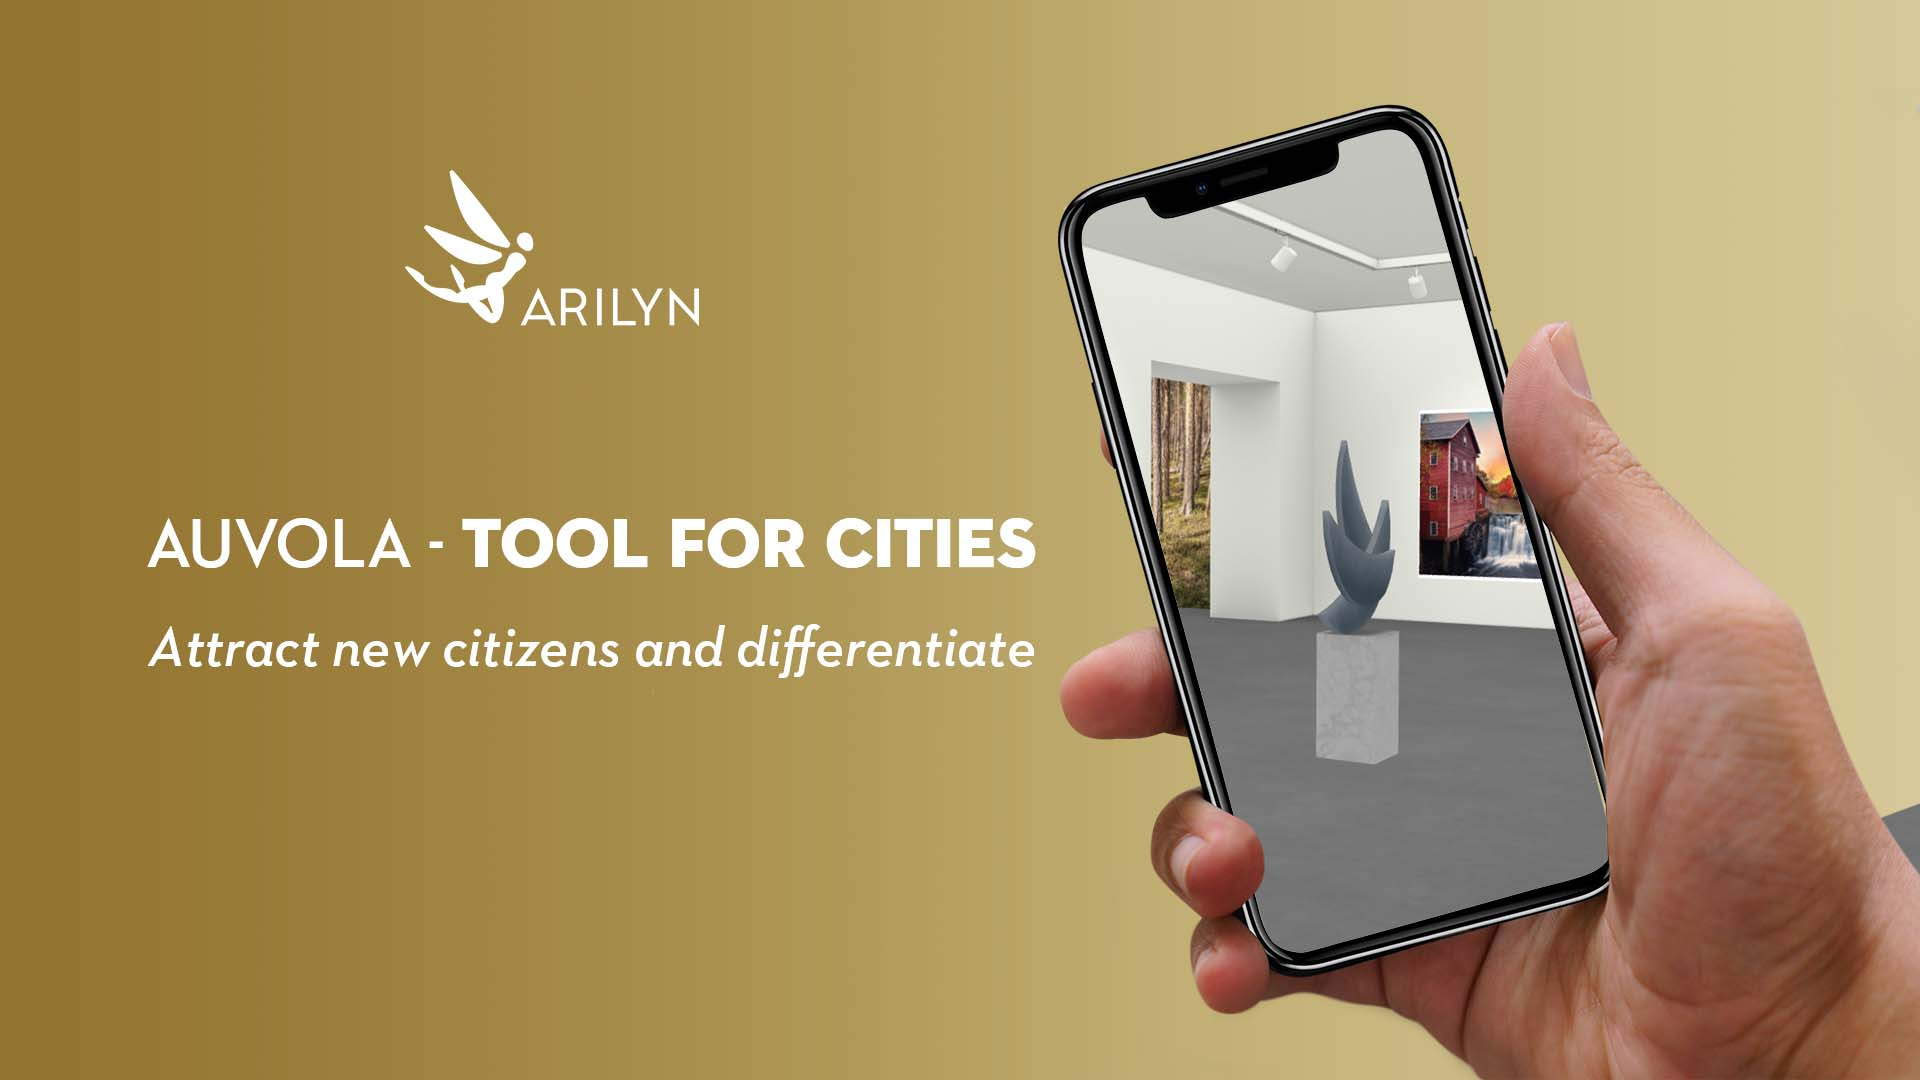 Auvola virtual space - tool for cities to differentiate and attract